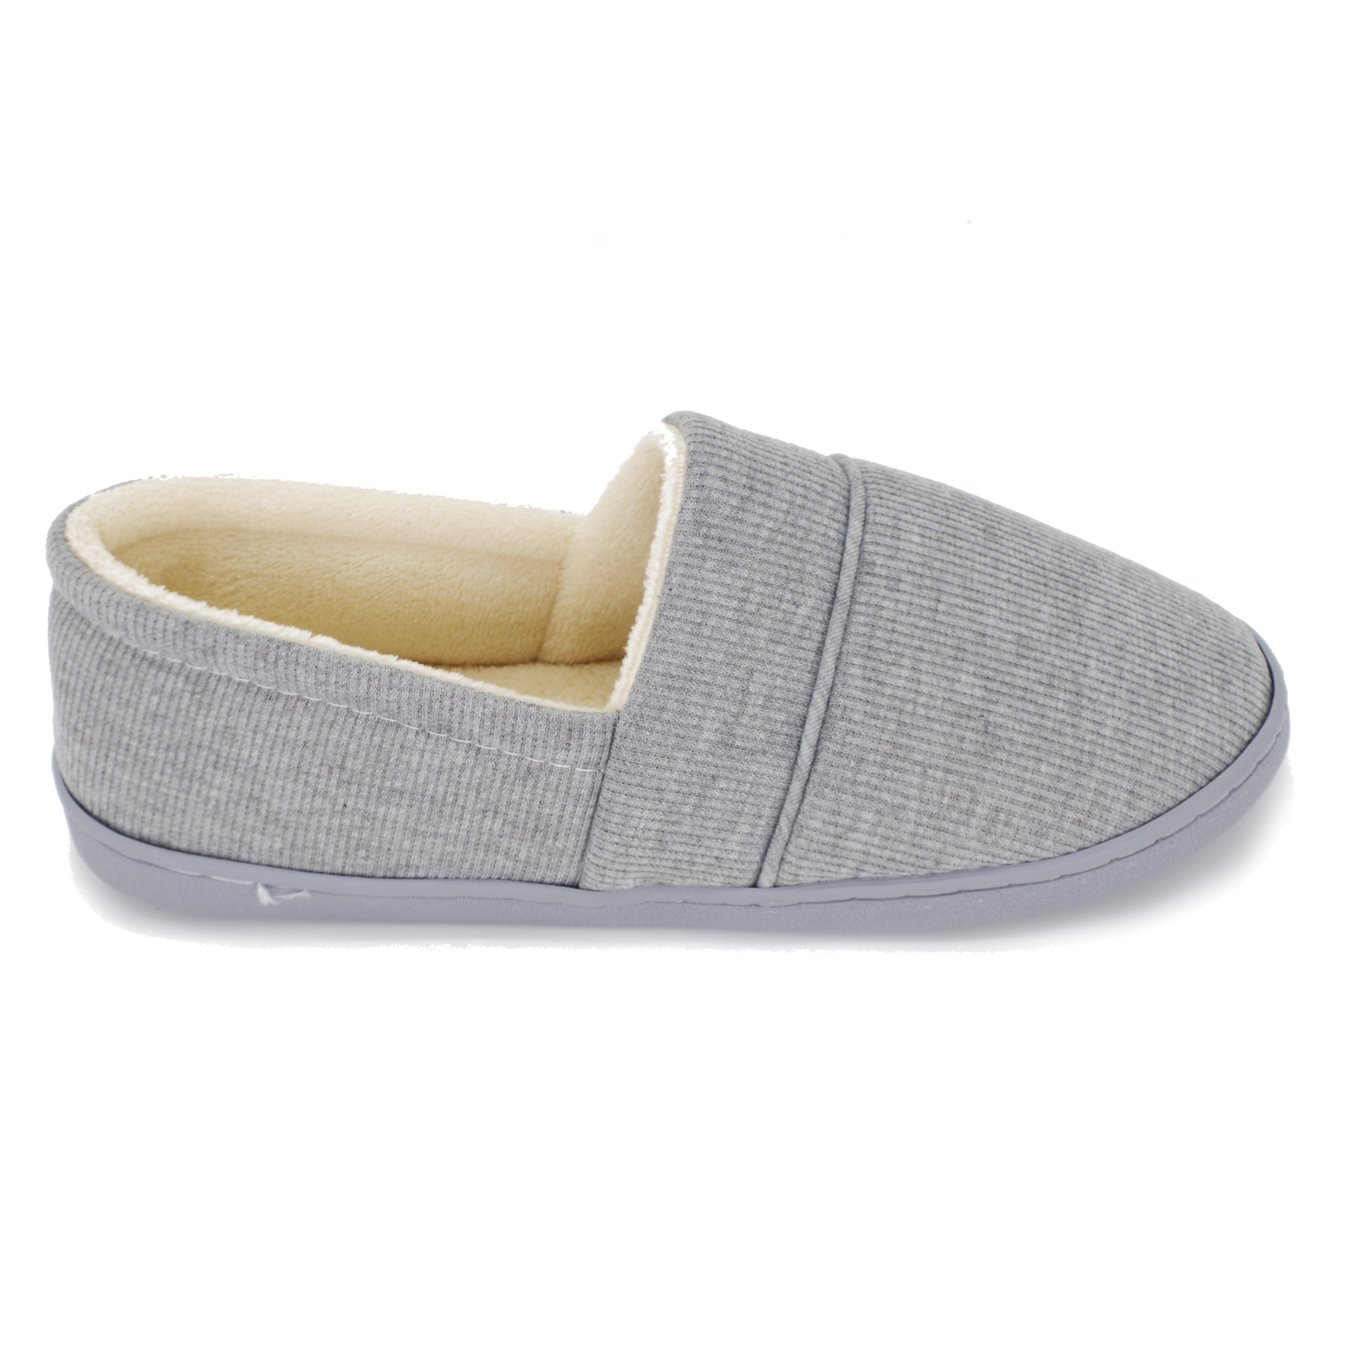 Moodeng Cotton Slippers for Women Knit Anti-Slip Lightweight Soft Comfort House Slippers Slip-on Velvety Home Shoes by Moodeng (Image #4)